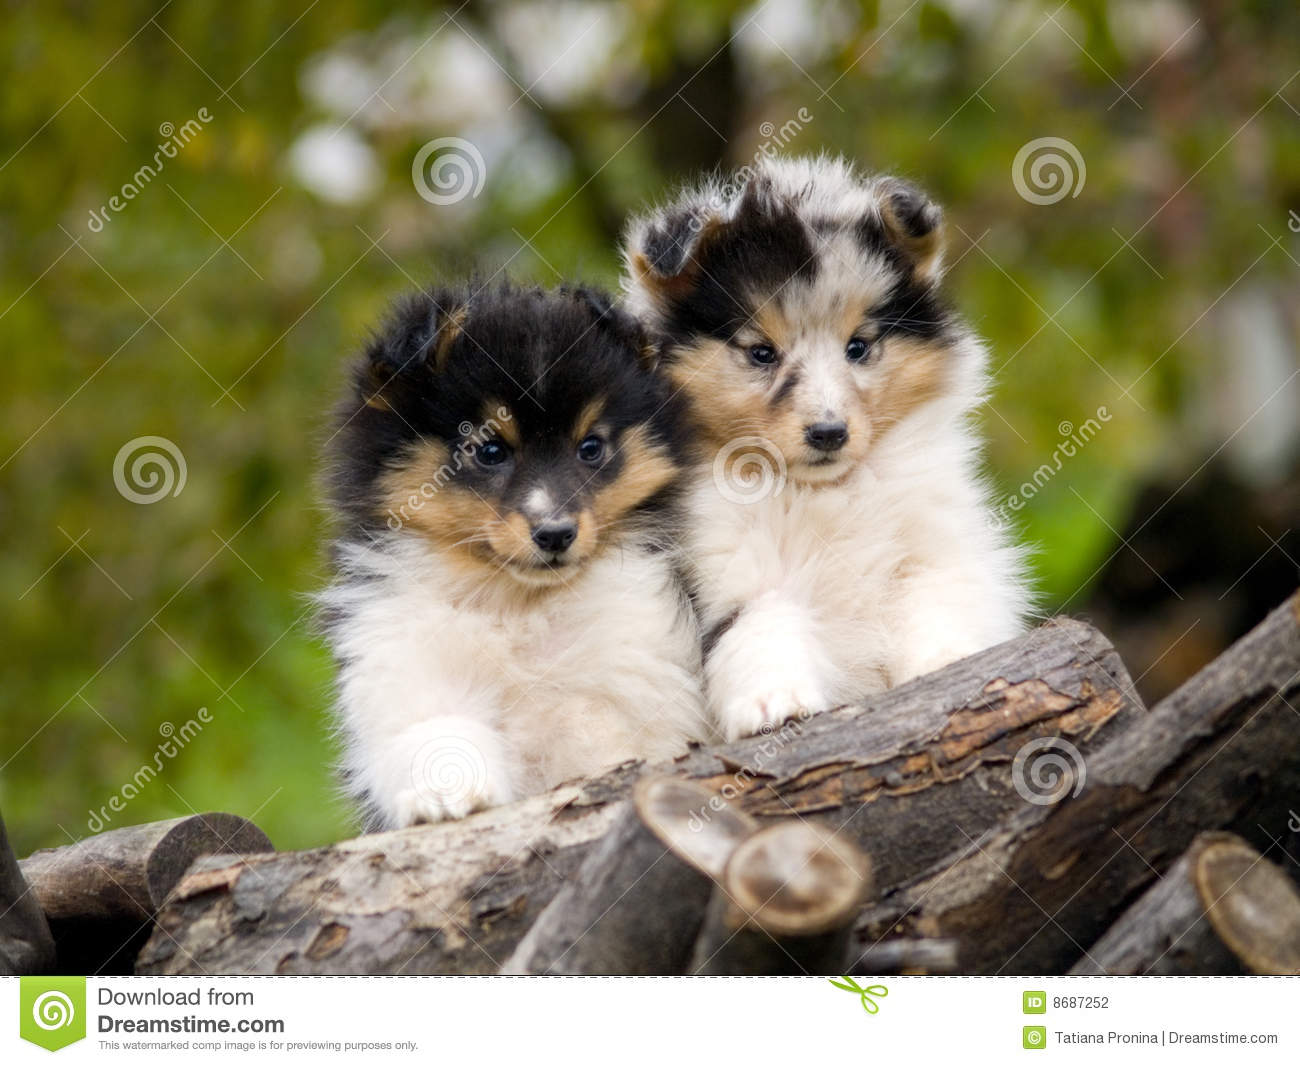 Cute Puppies Wallpaper Backgrounds Sheltie Puppies Stock Photo Image Of Friends Small